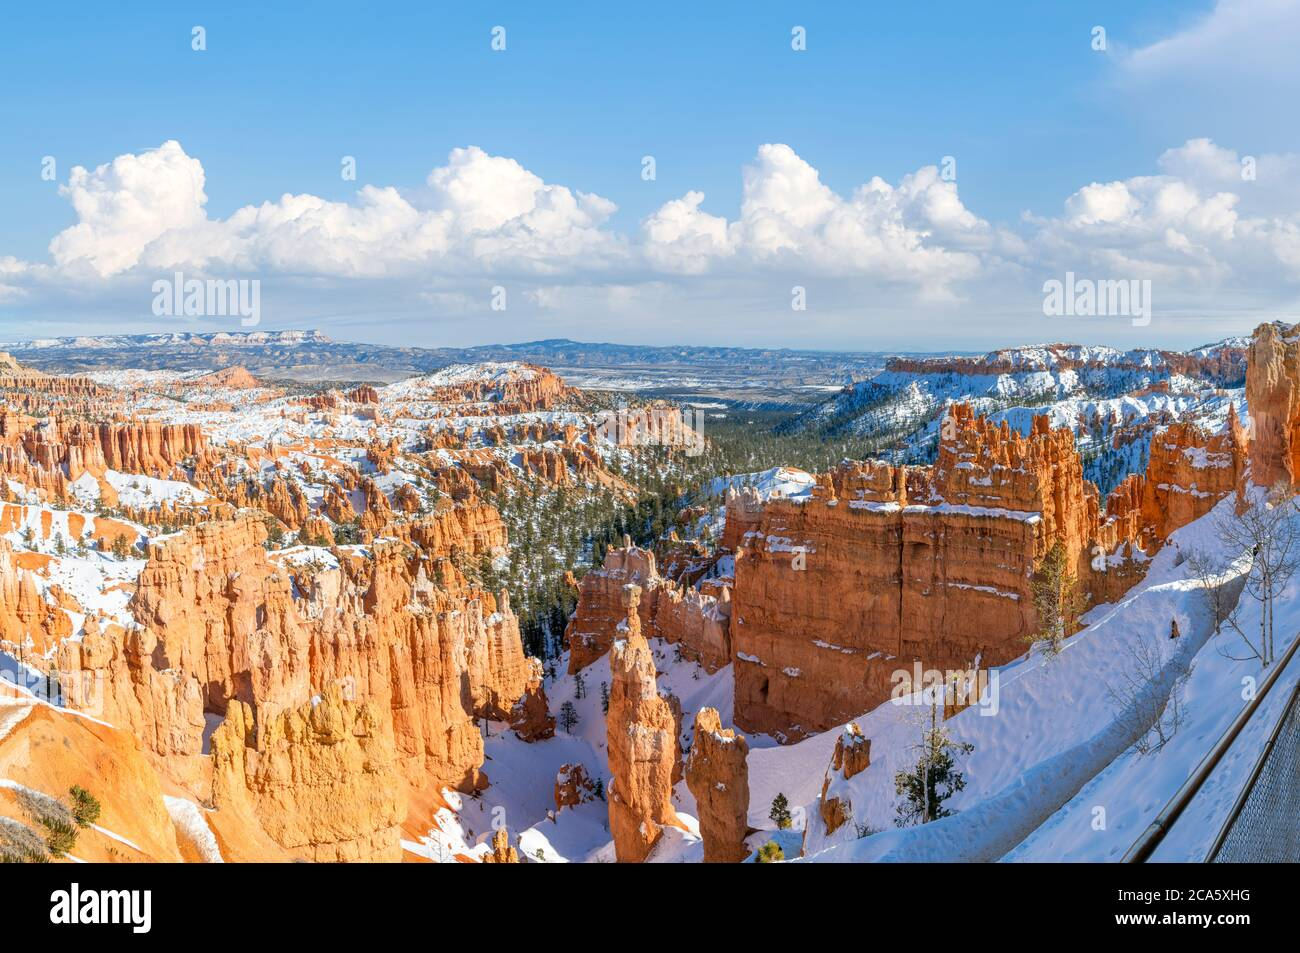 Bryce Amphitheater from the Rim Trail con Thor's Hammer en primer plano, Sunset Point, Bryce Canyon National Park, Utah, EE.UU Foto de stock